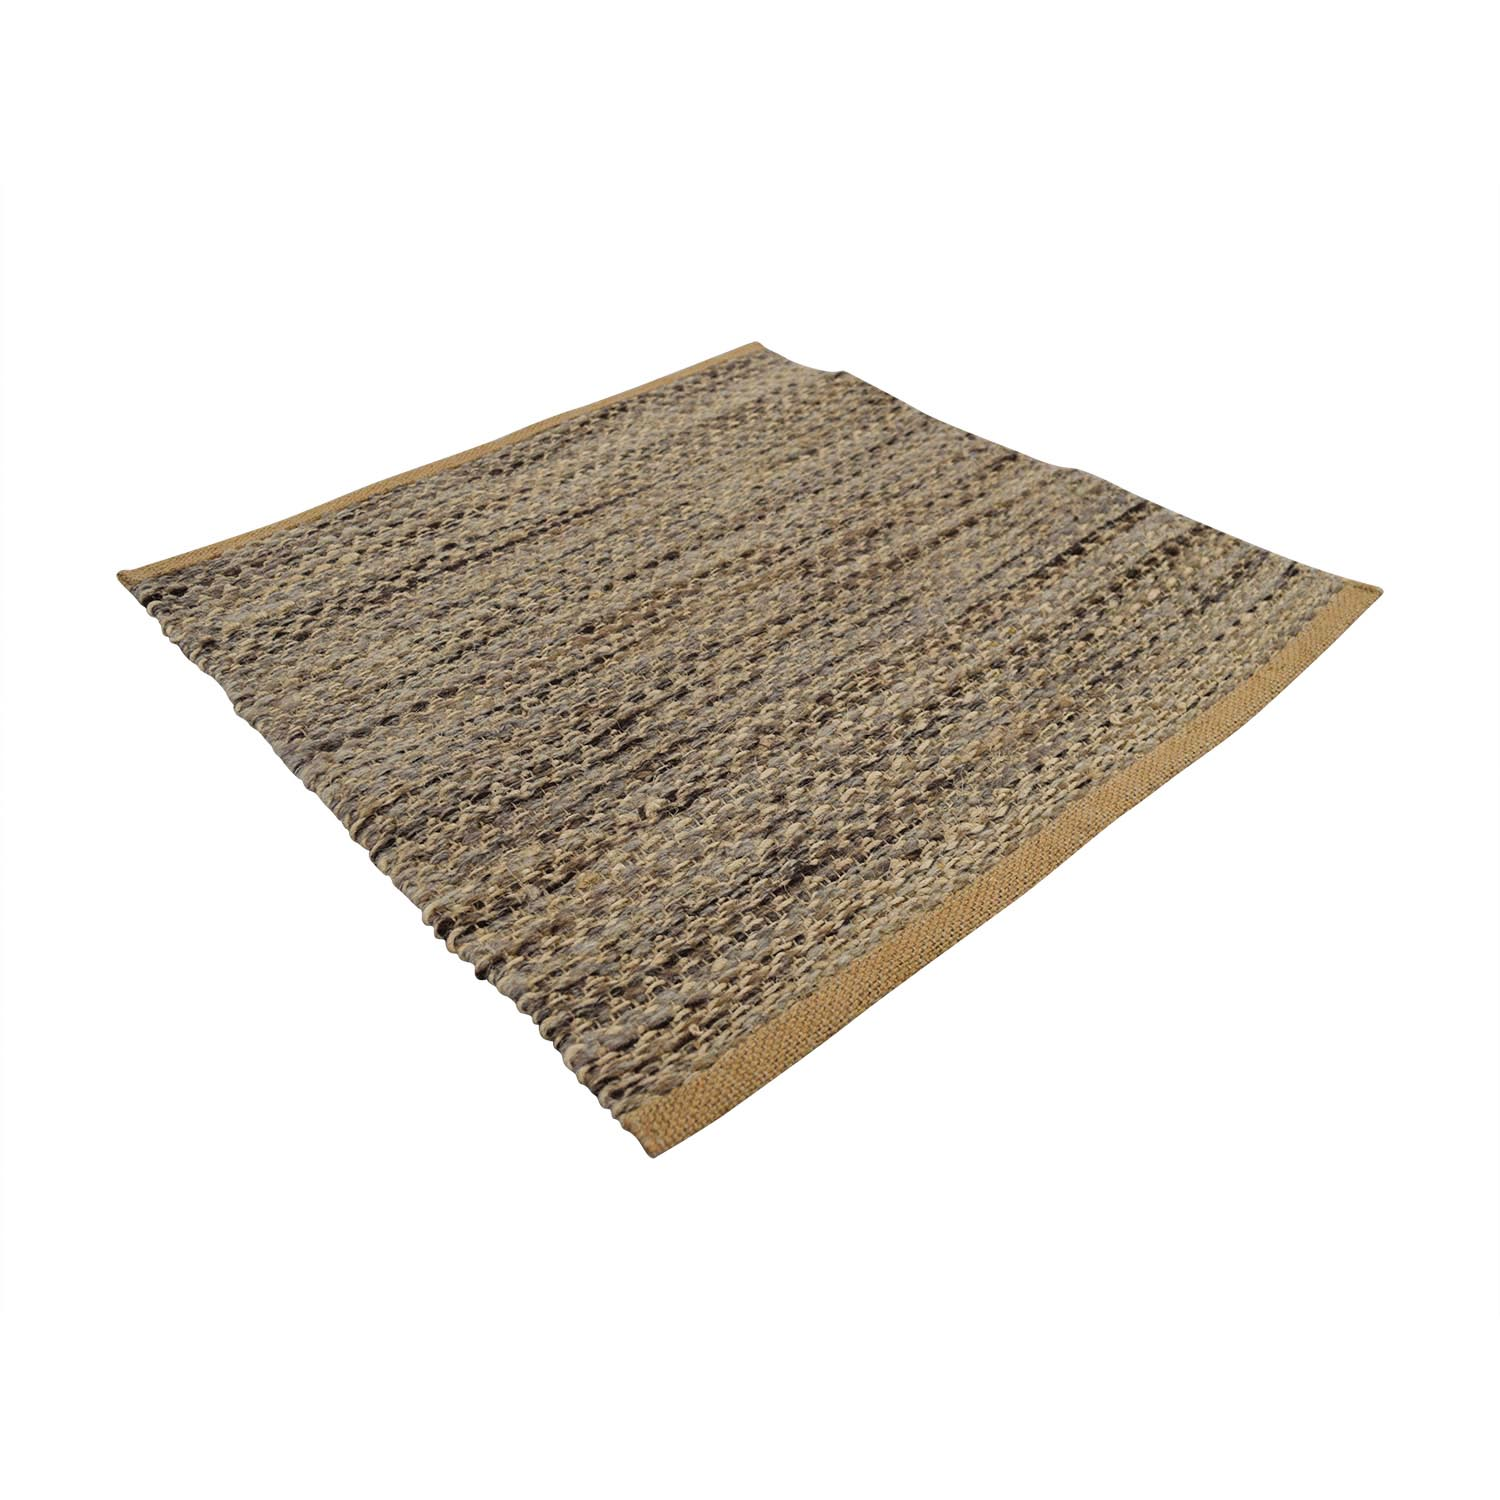 Obeetee Obeetee Brown and Beige Entry Rug coupon